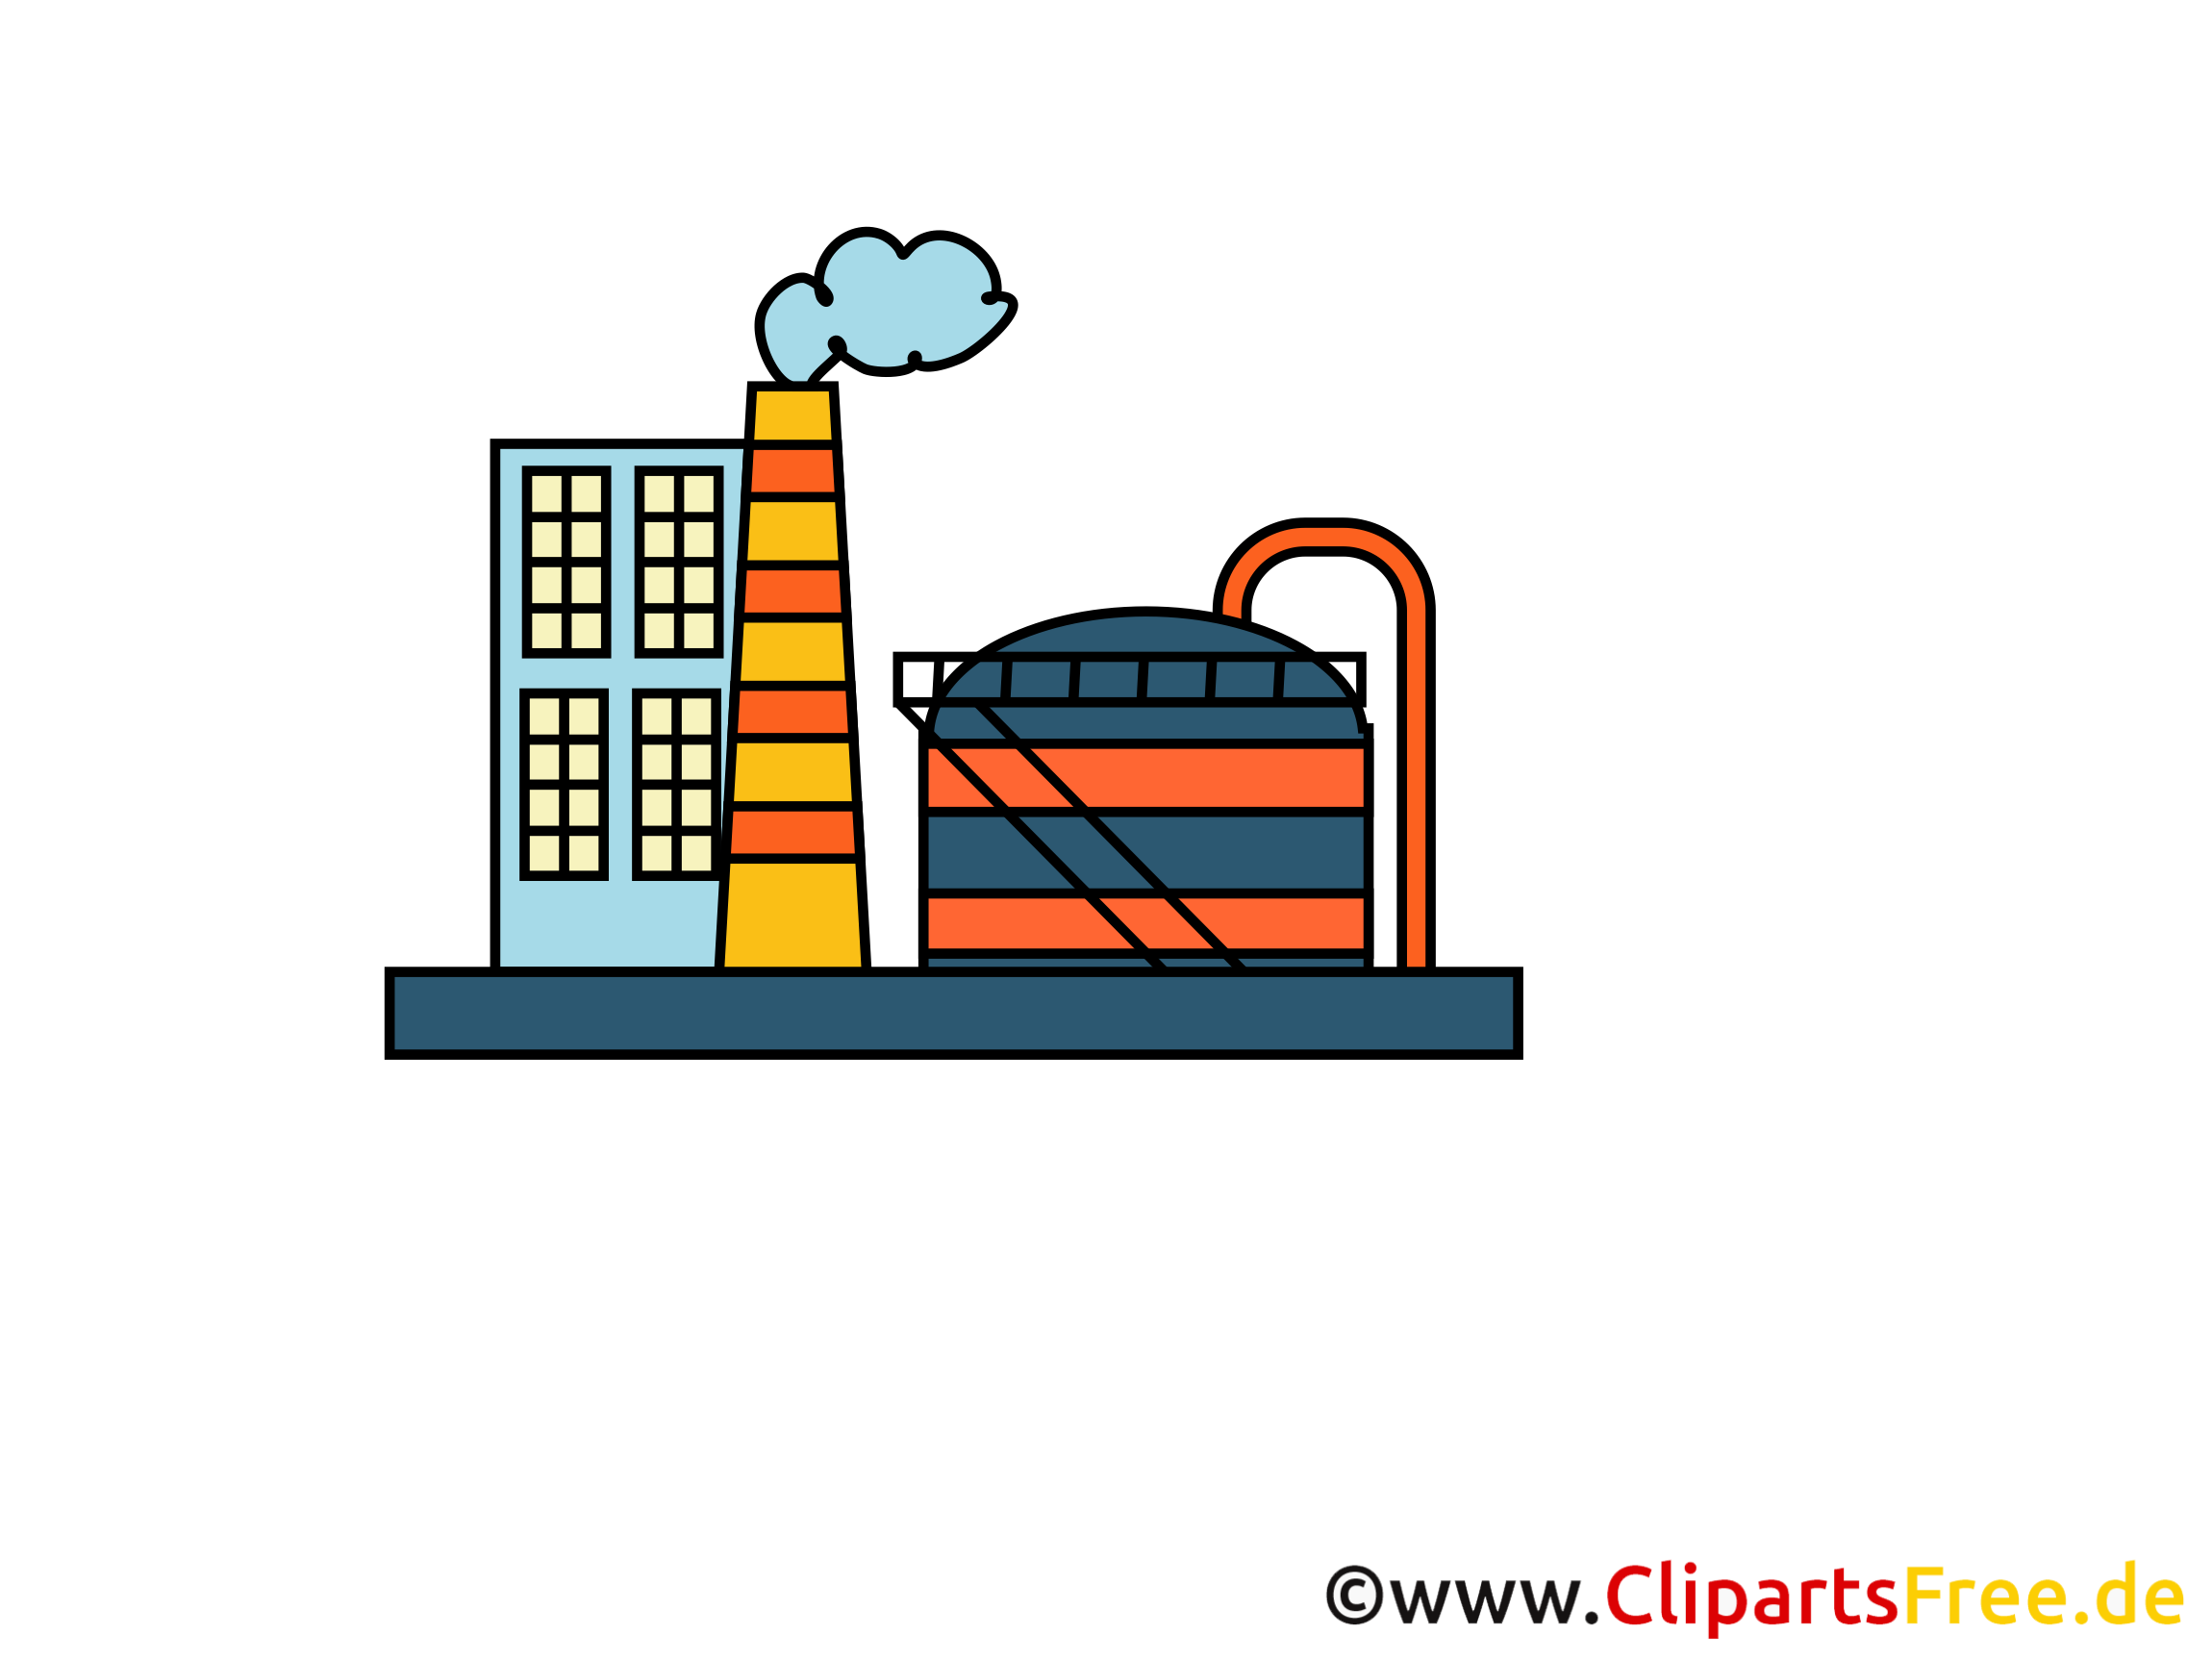 clipart usine gratuit - photo #6